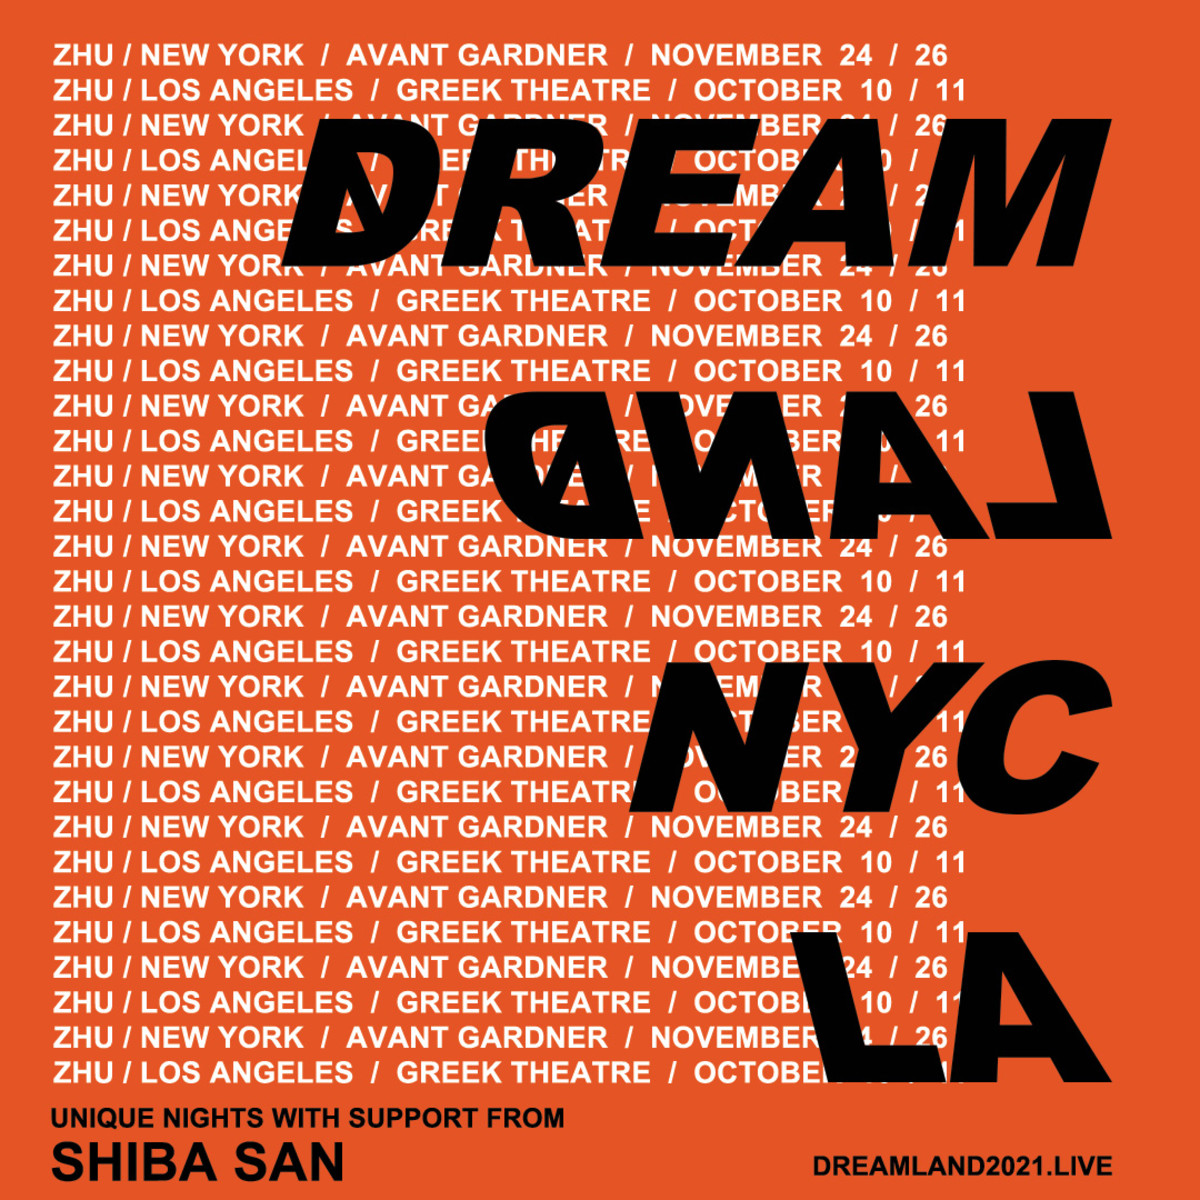 Flyer for ZHU's 2021 headlining gigs at Brooklyn Mirage in New York and the Greek Theatre in Los Angeles.